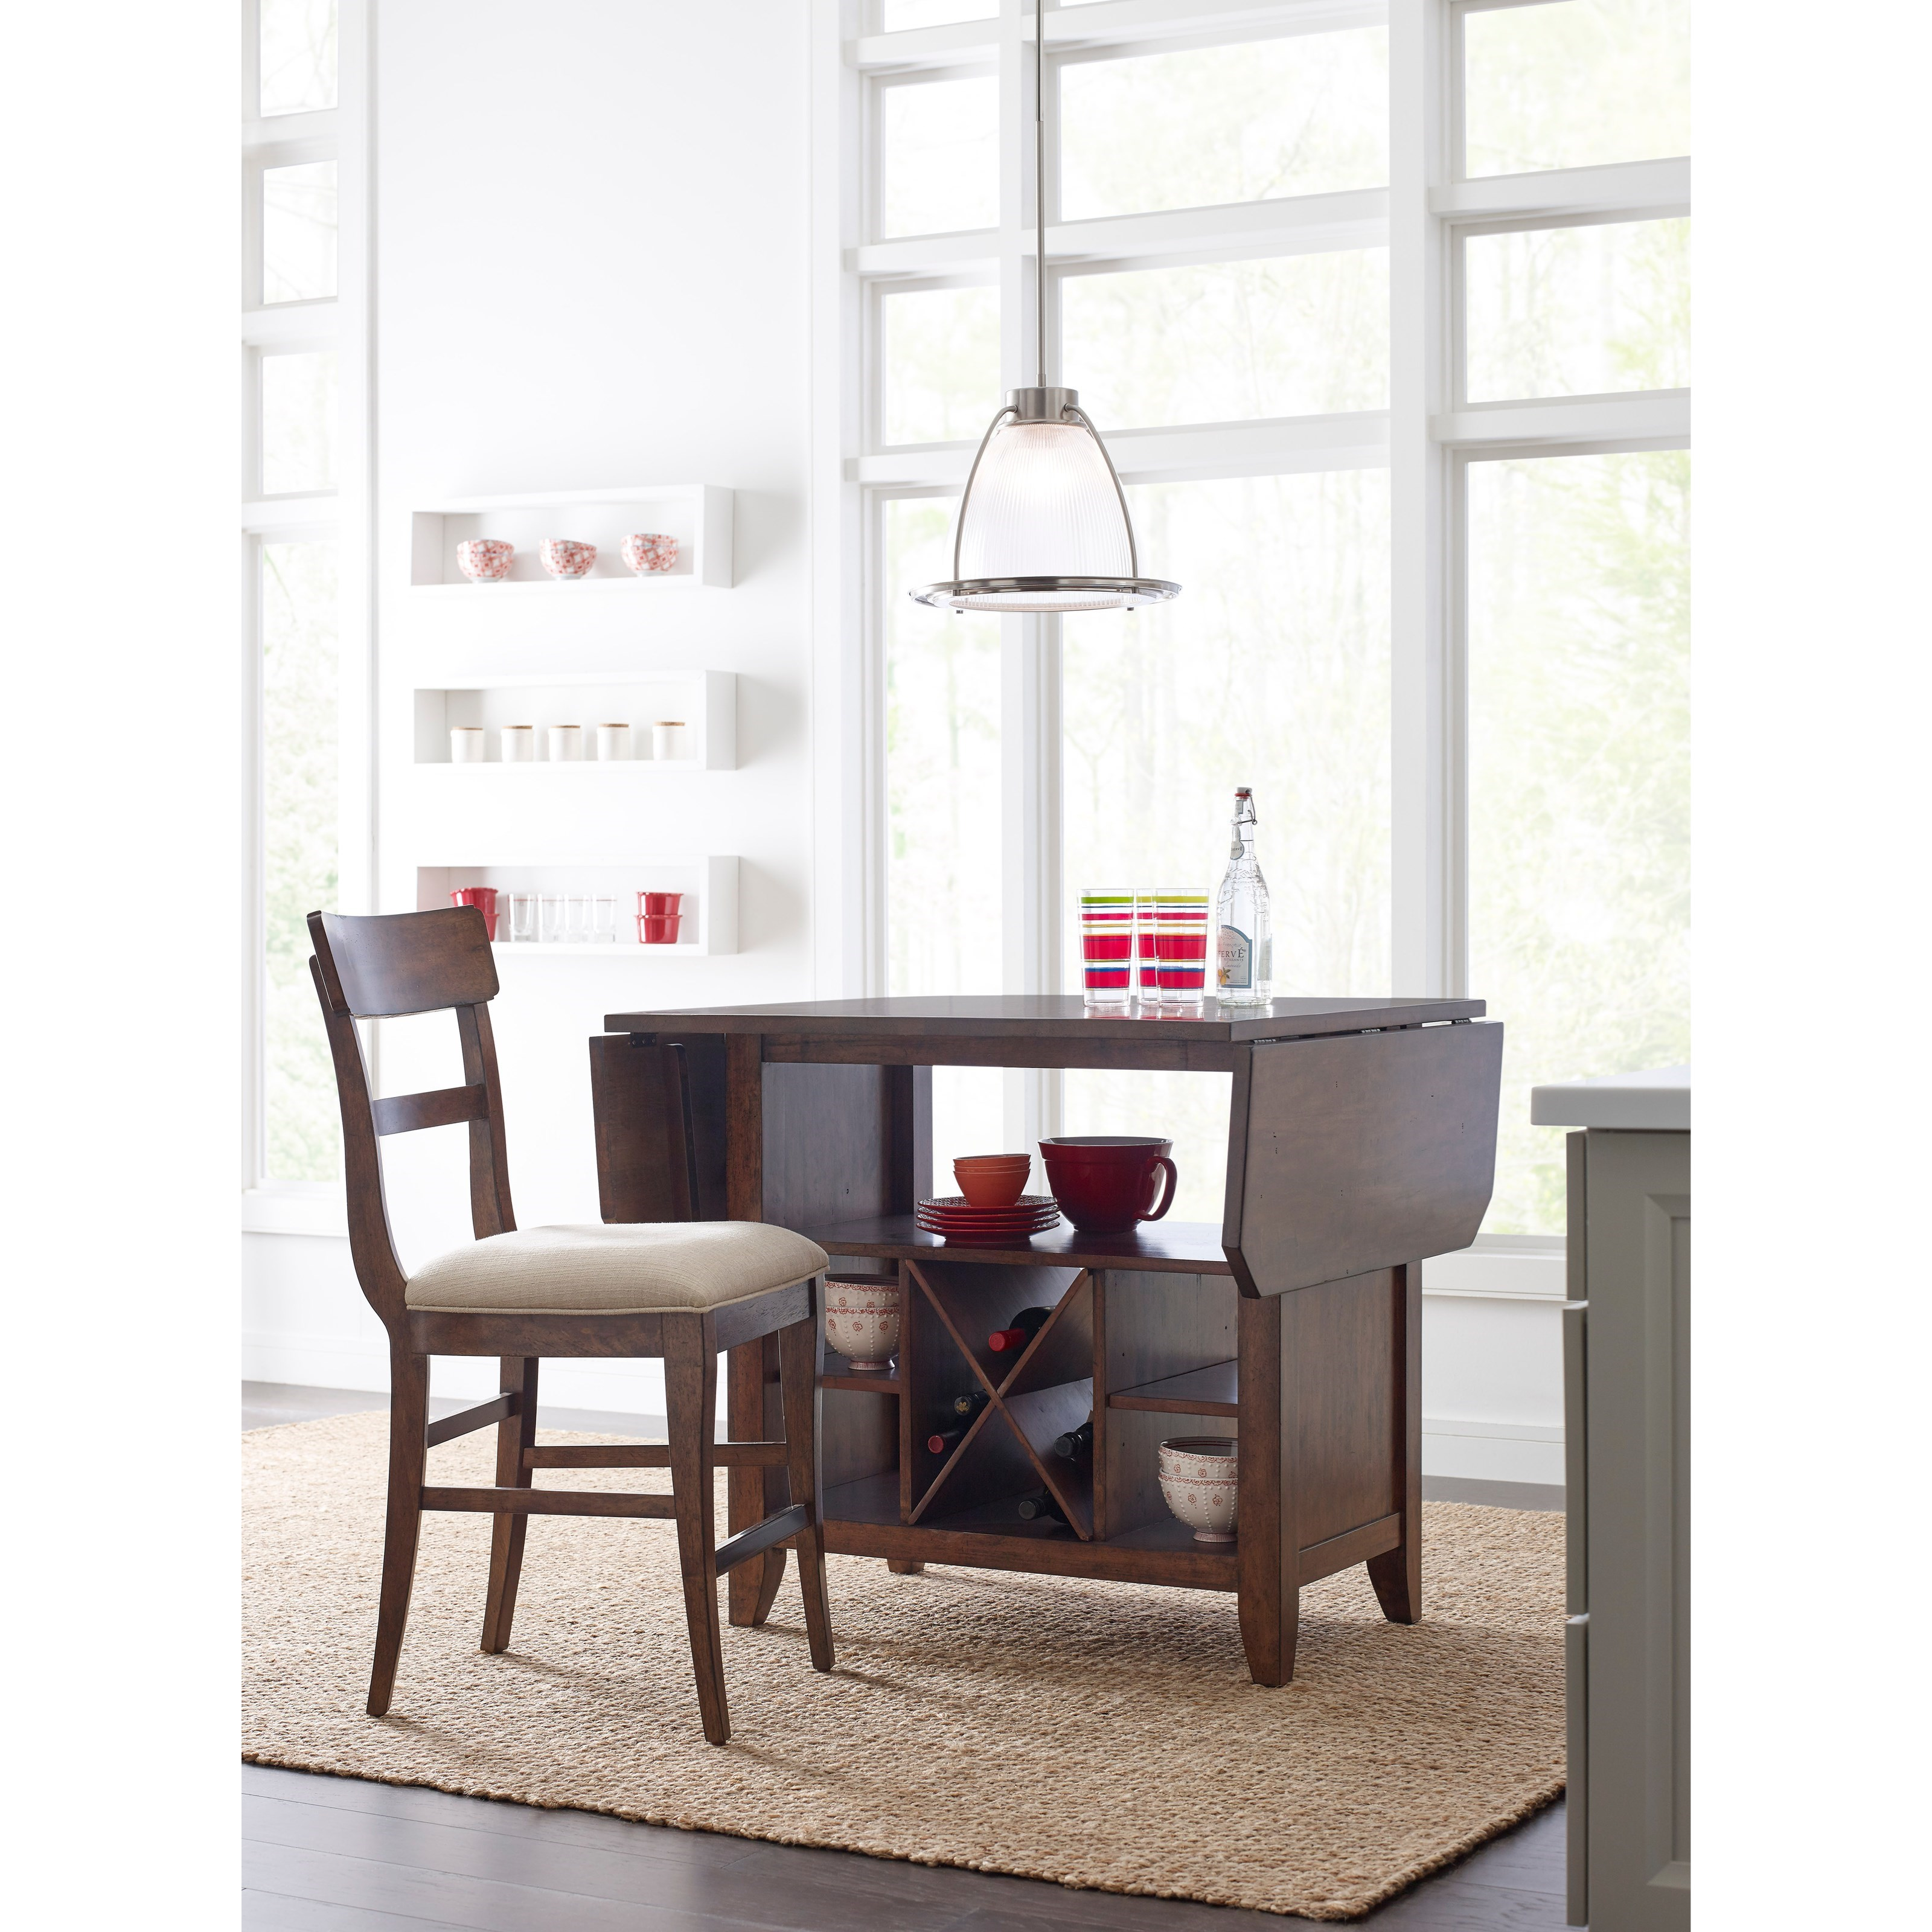 Kincaid Furniture The Nook Solid Wood Counter Height Stool